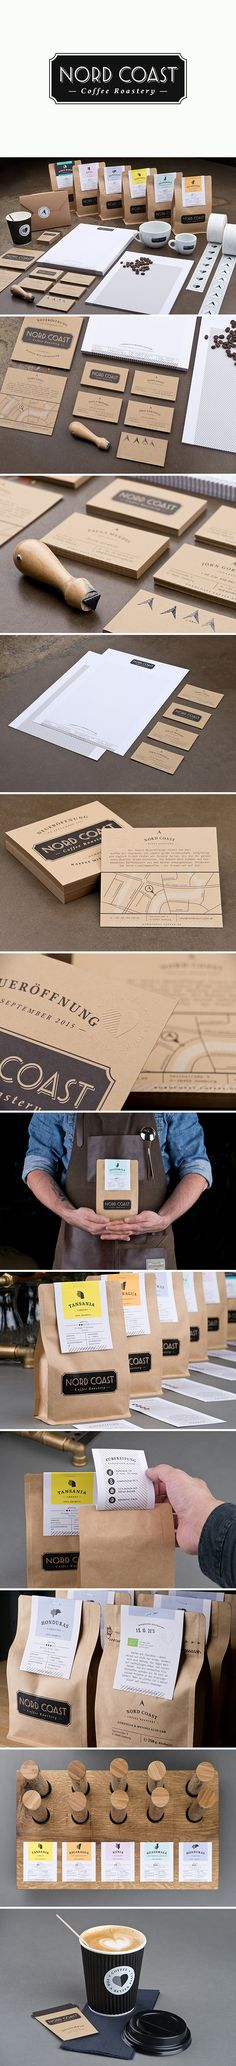 Nord Coast Coffee Roastery by Phound Design Studio